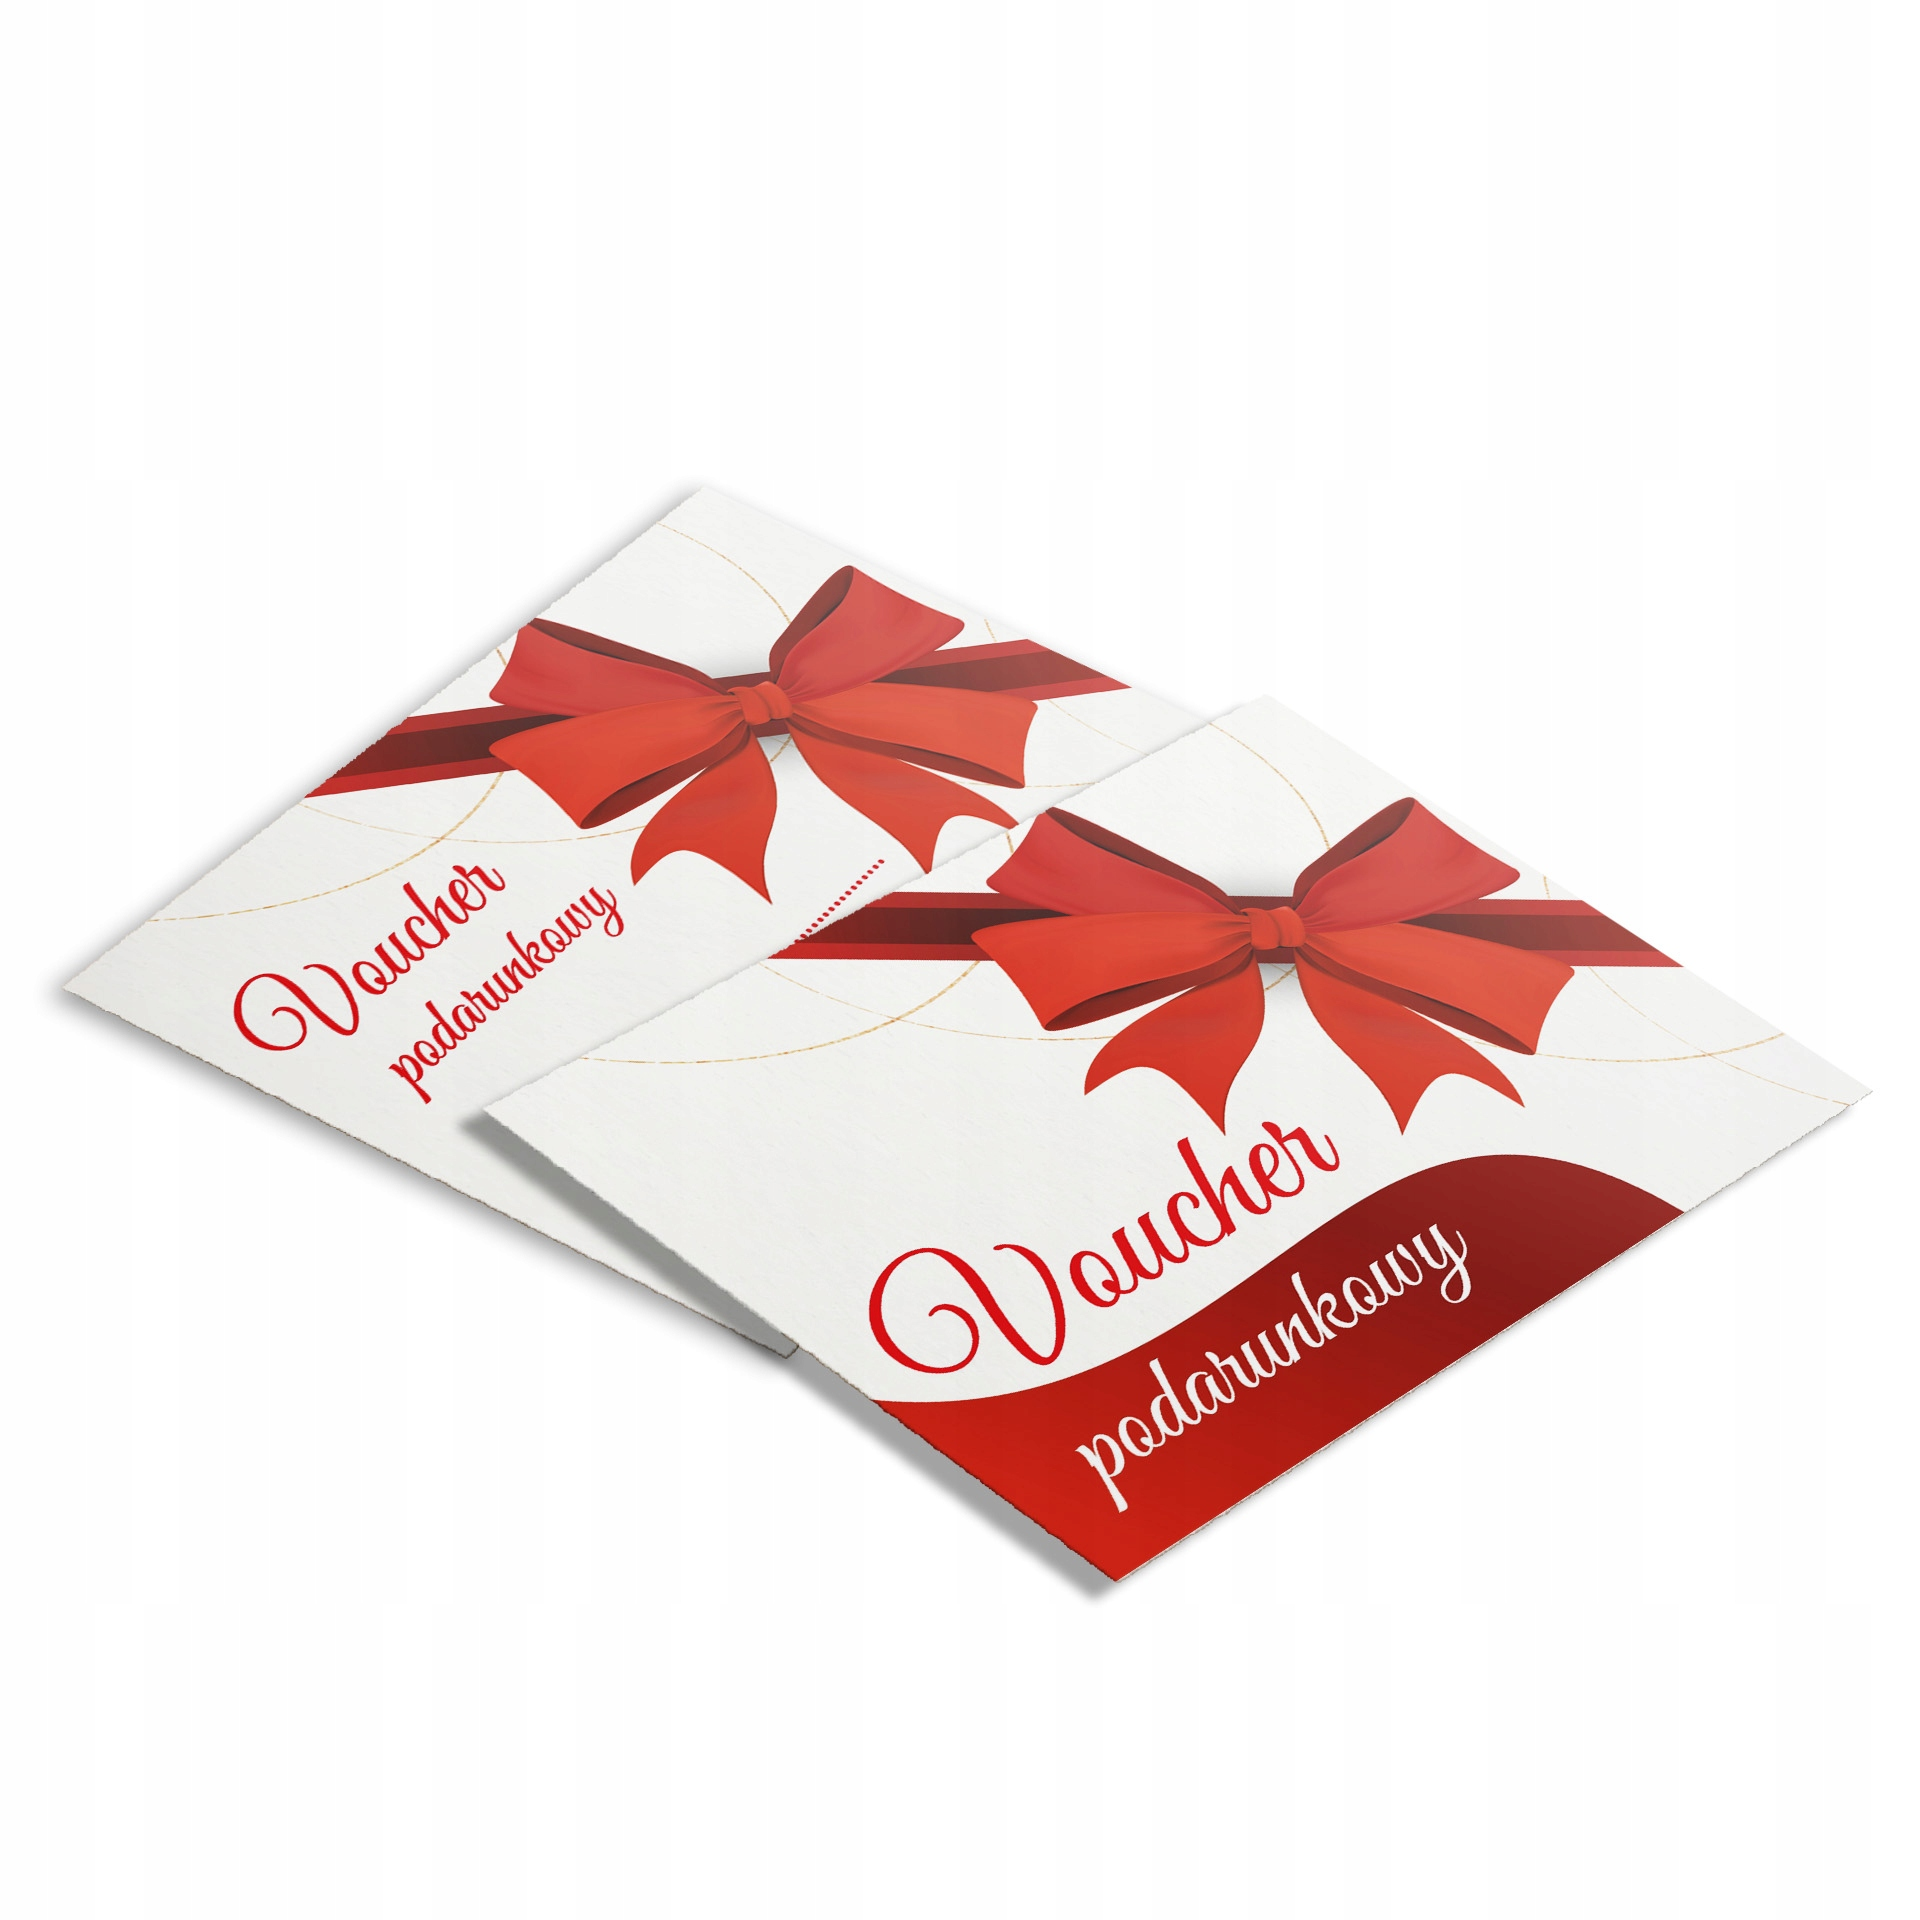 Item GIFT certificate for A6 gift certificate gift 500pcs 350g